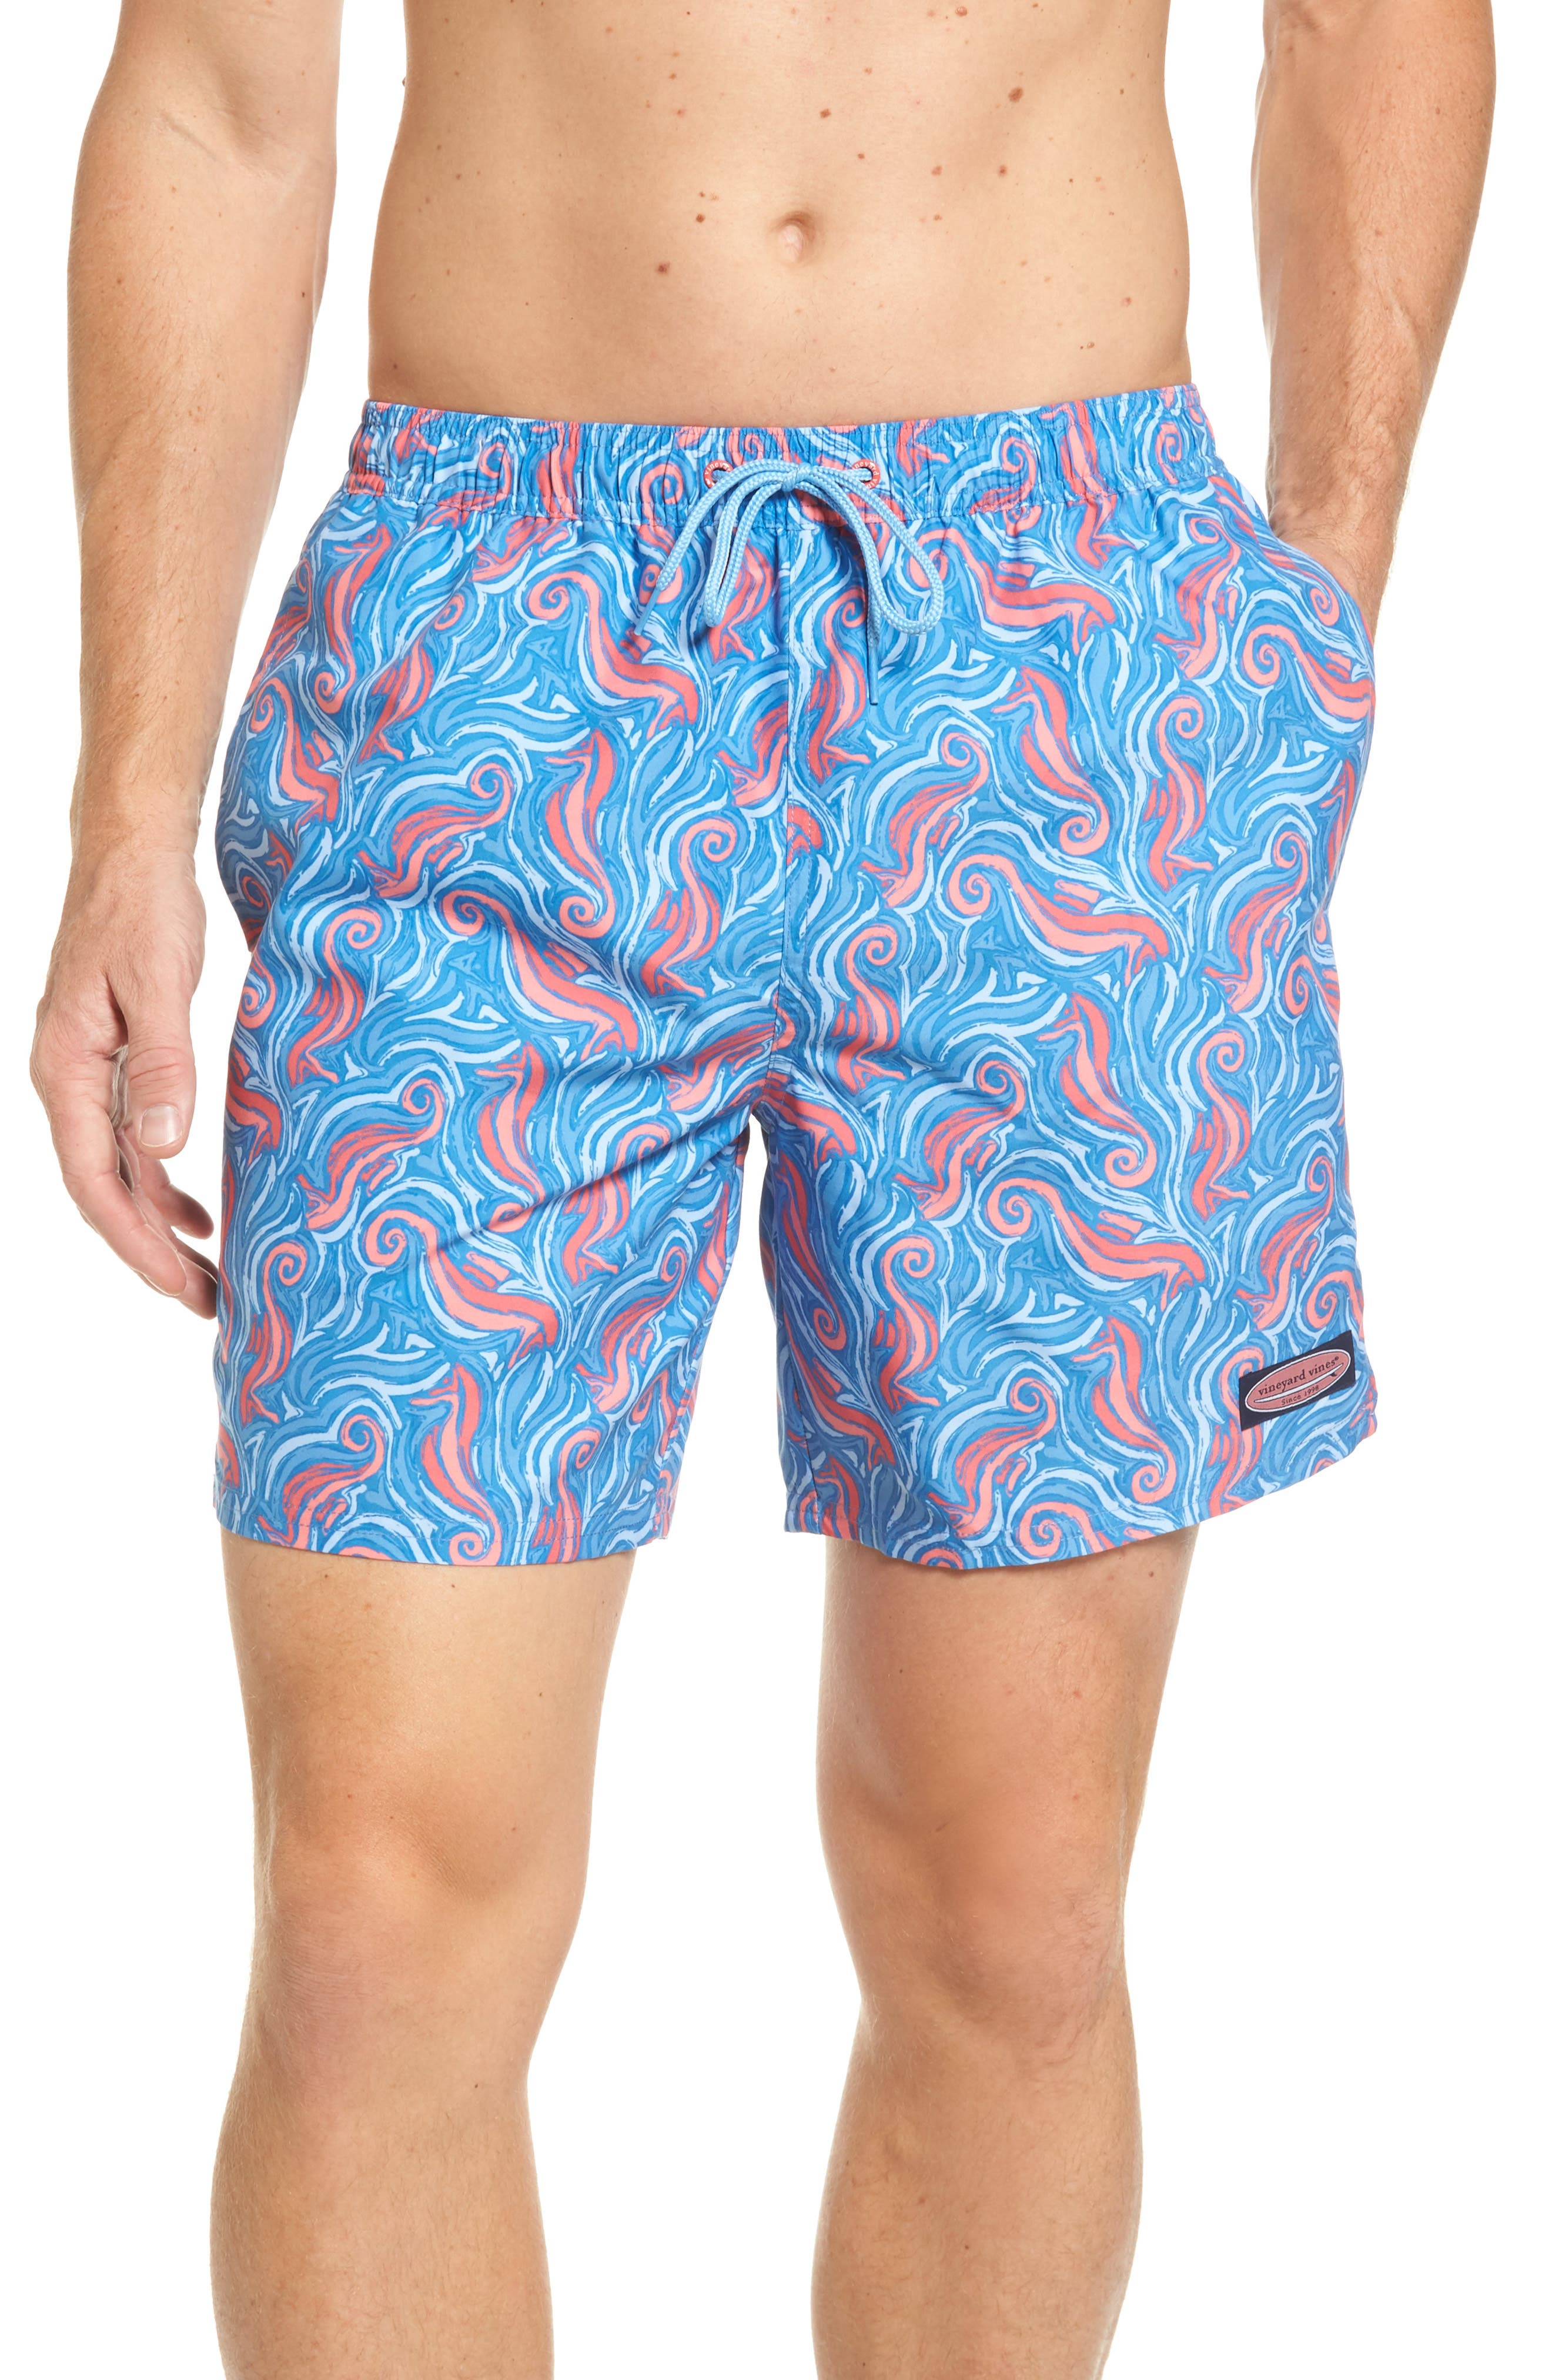 Vineyard Vines Seahorse Chappy Swim Trunks